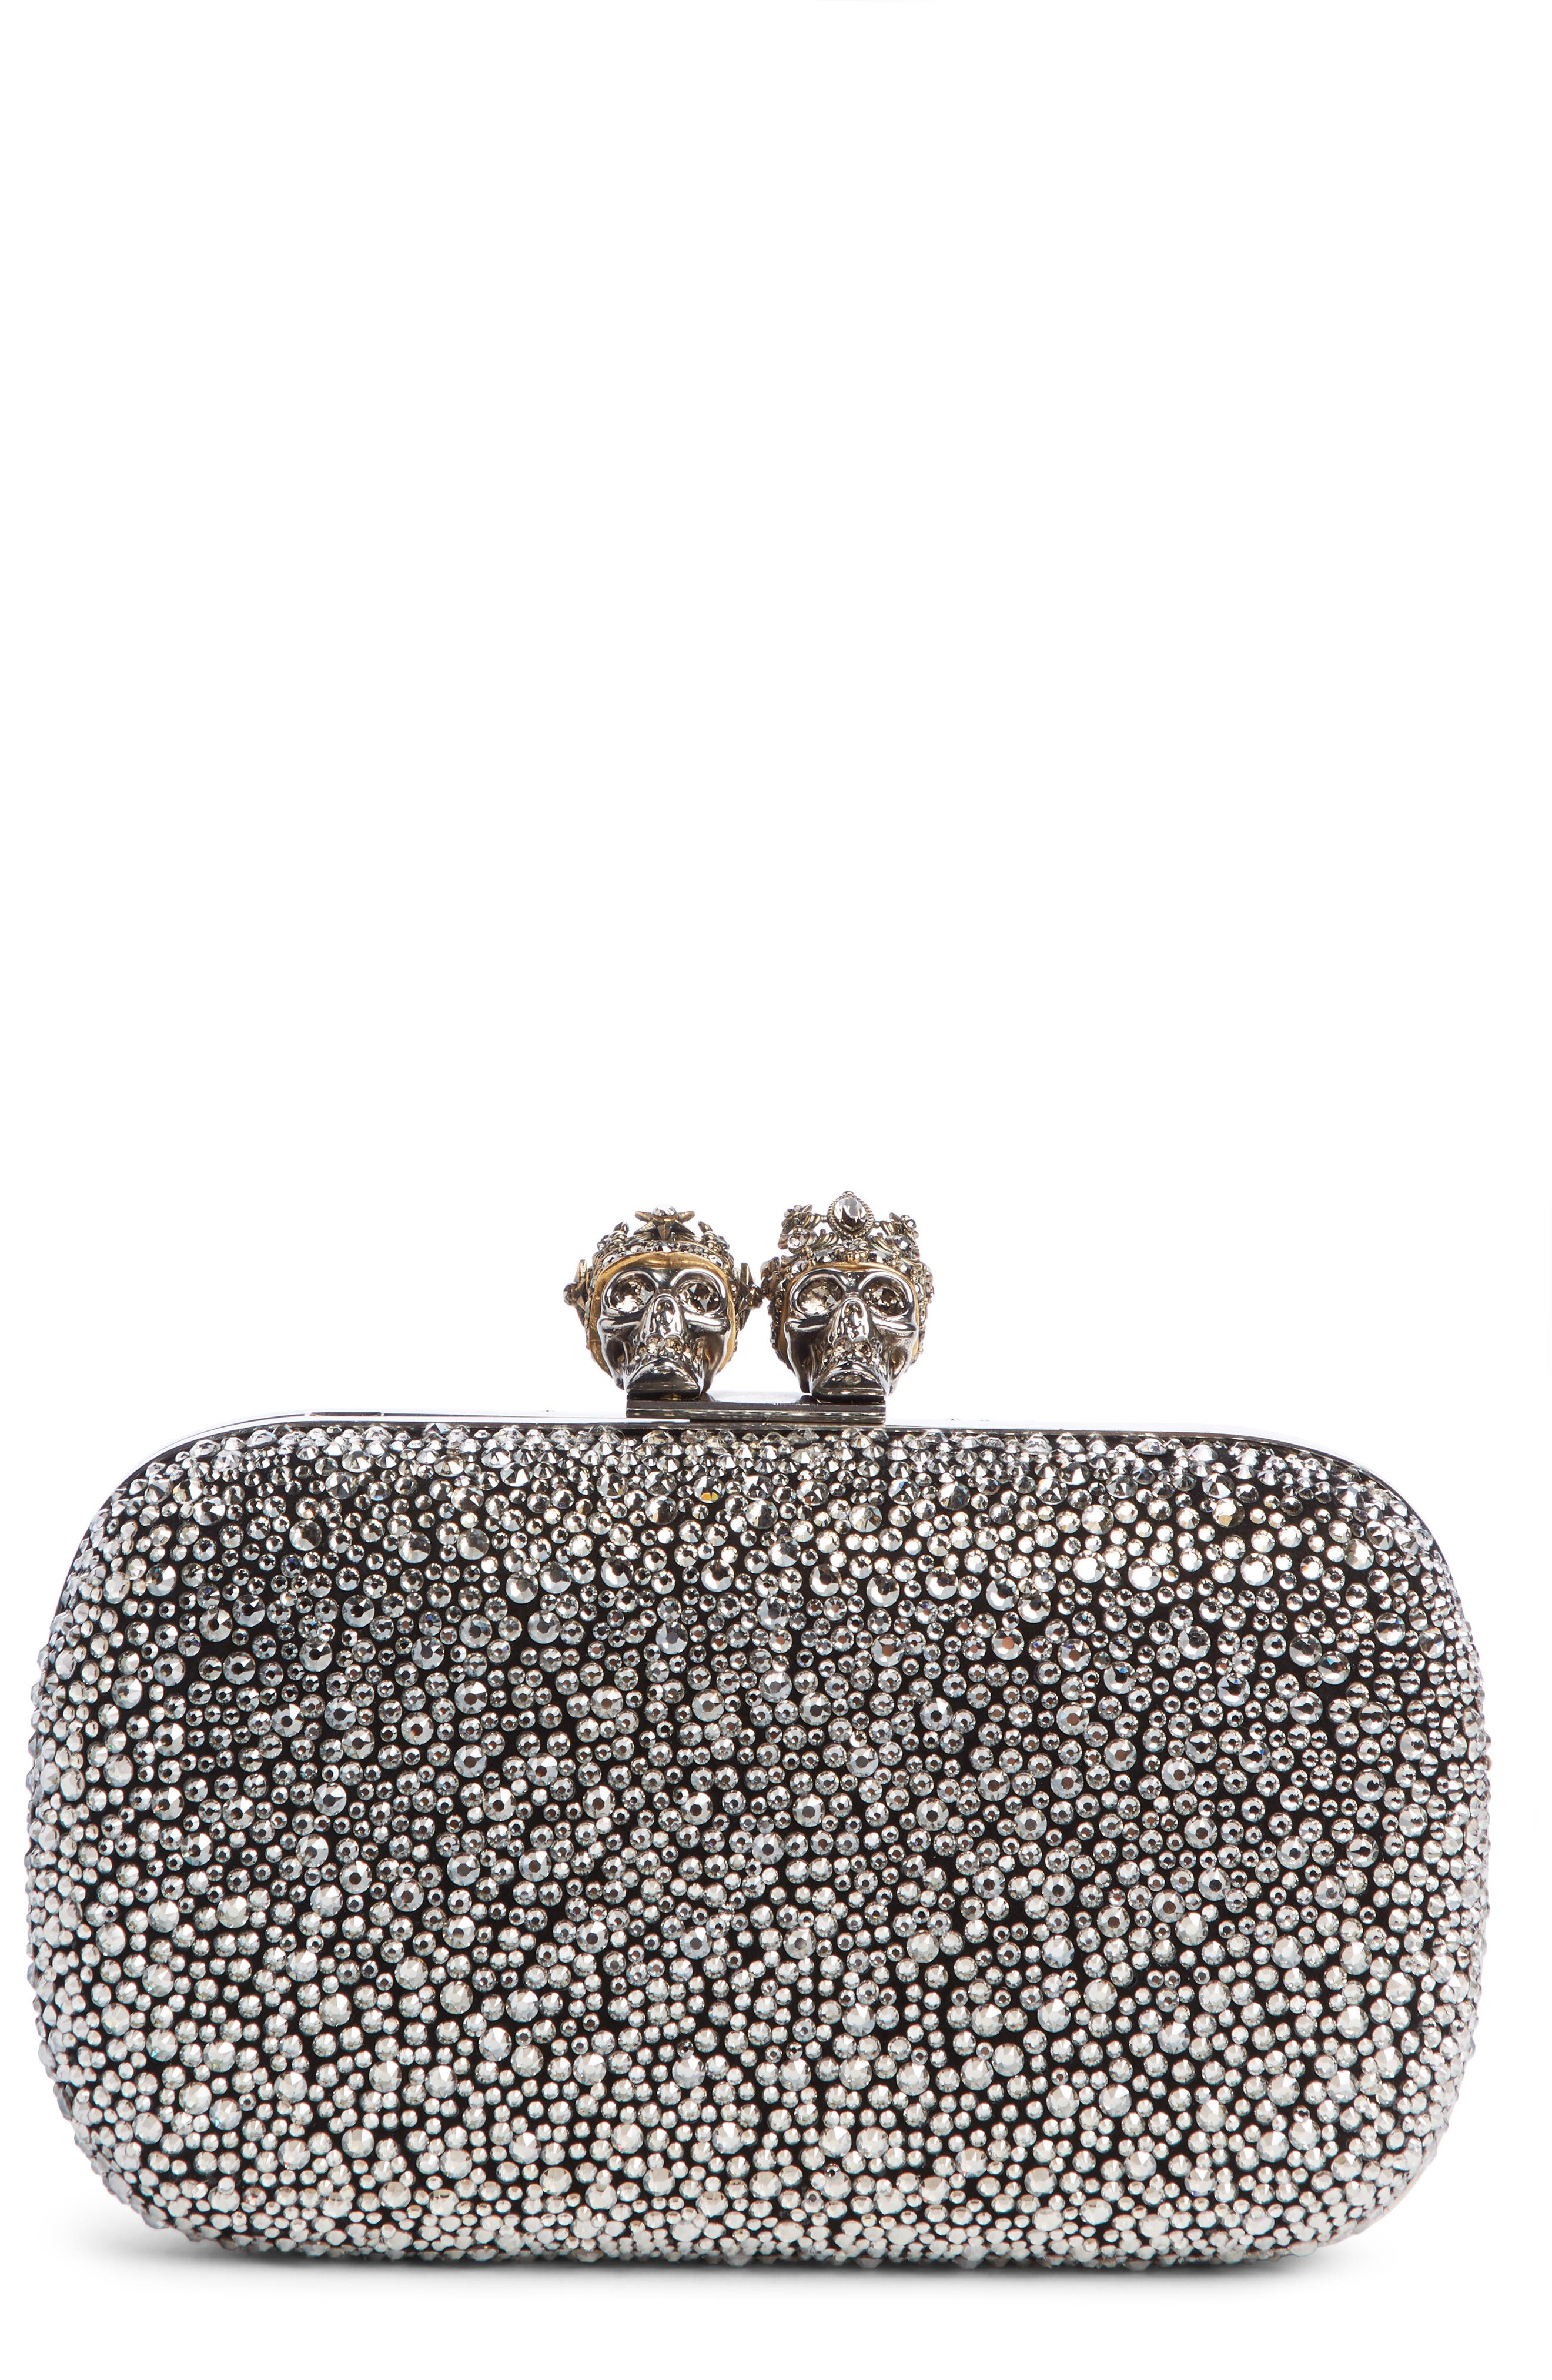 ALEXANDER MCQUEEN Crystal Embellished Queen & King Clutch, Main, color, BLACK